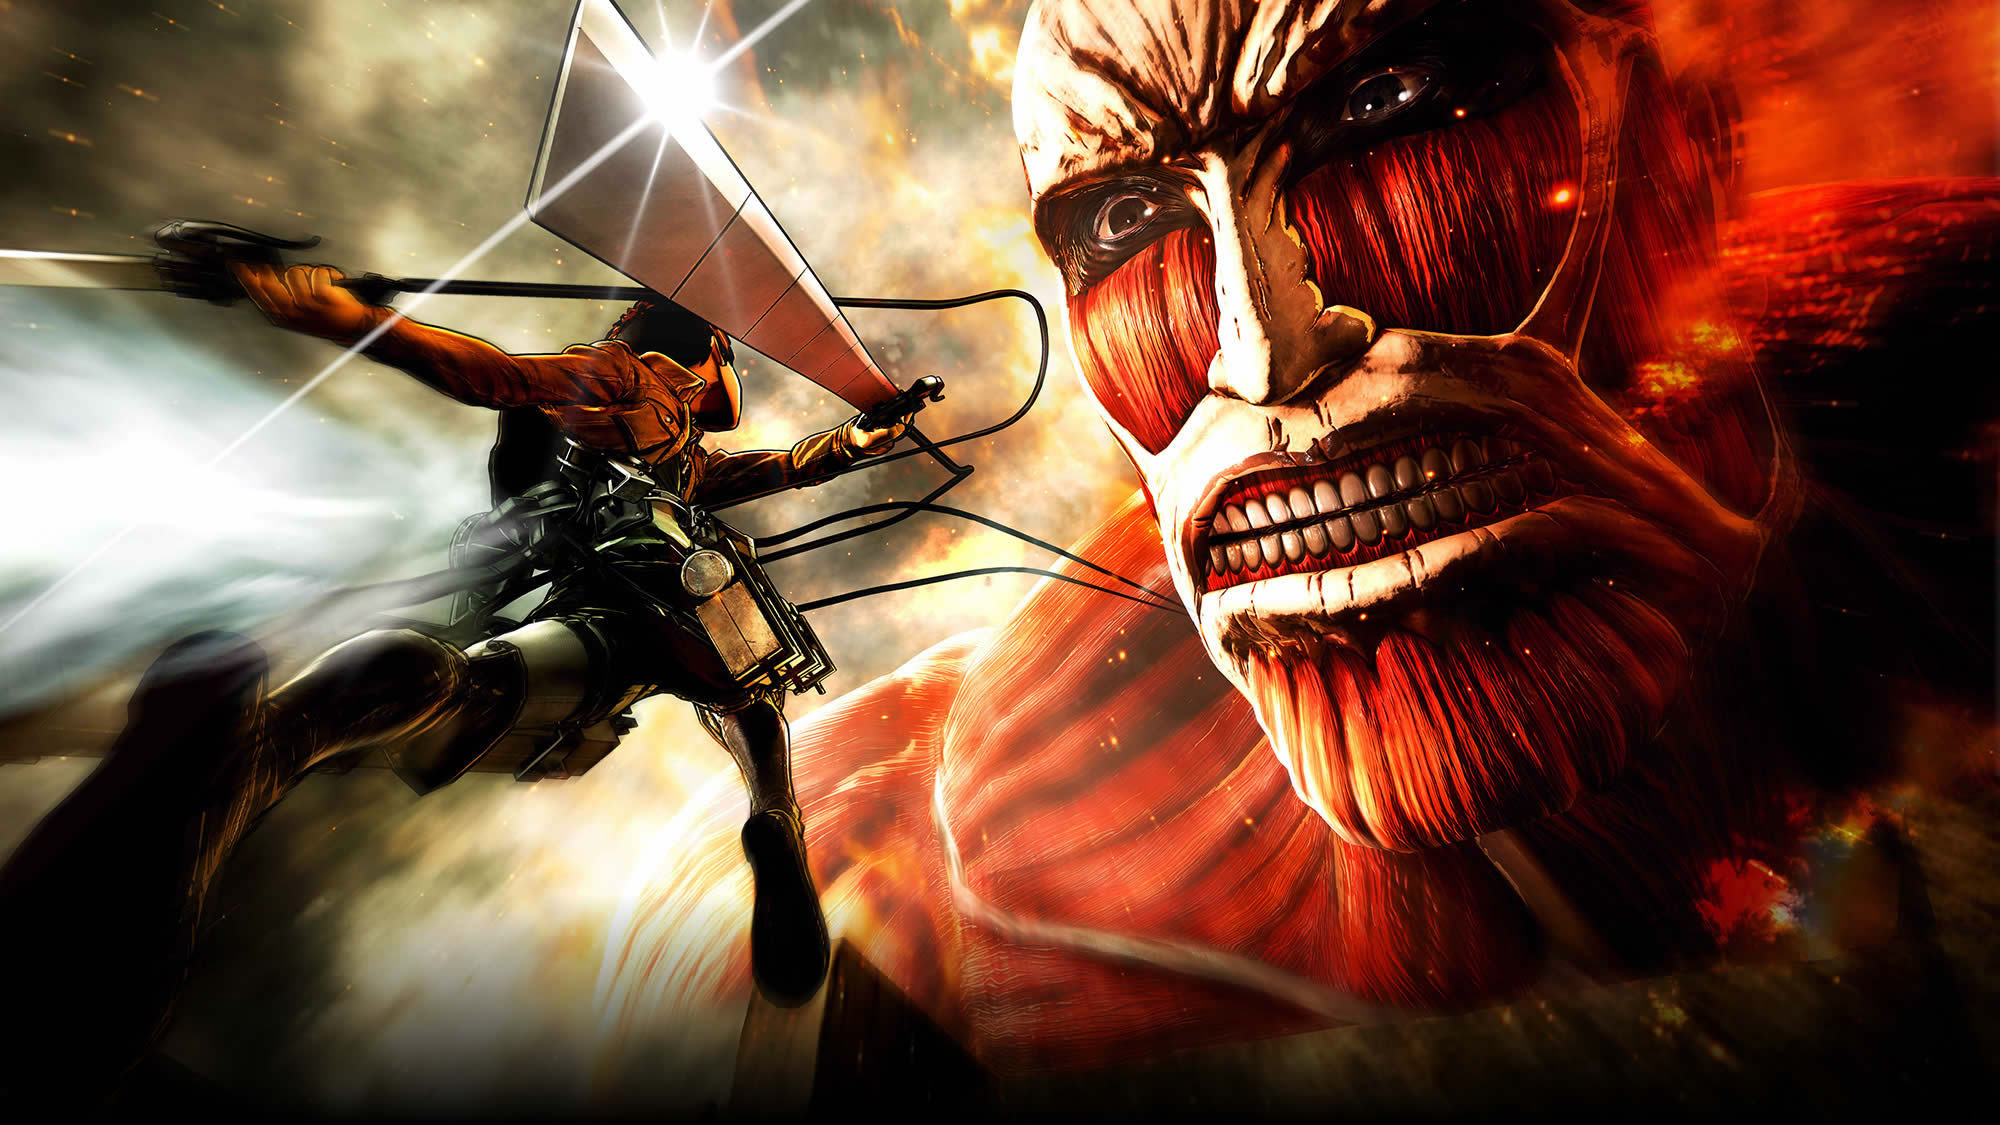 Attack On Titan Blade Colossal Titan Eren Yeager Weapon Wallpaper Resolution 2000x1125 Id 1083472 Wallha Com